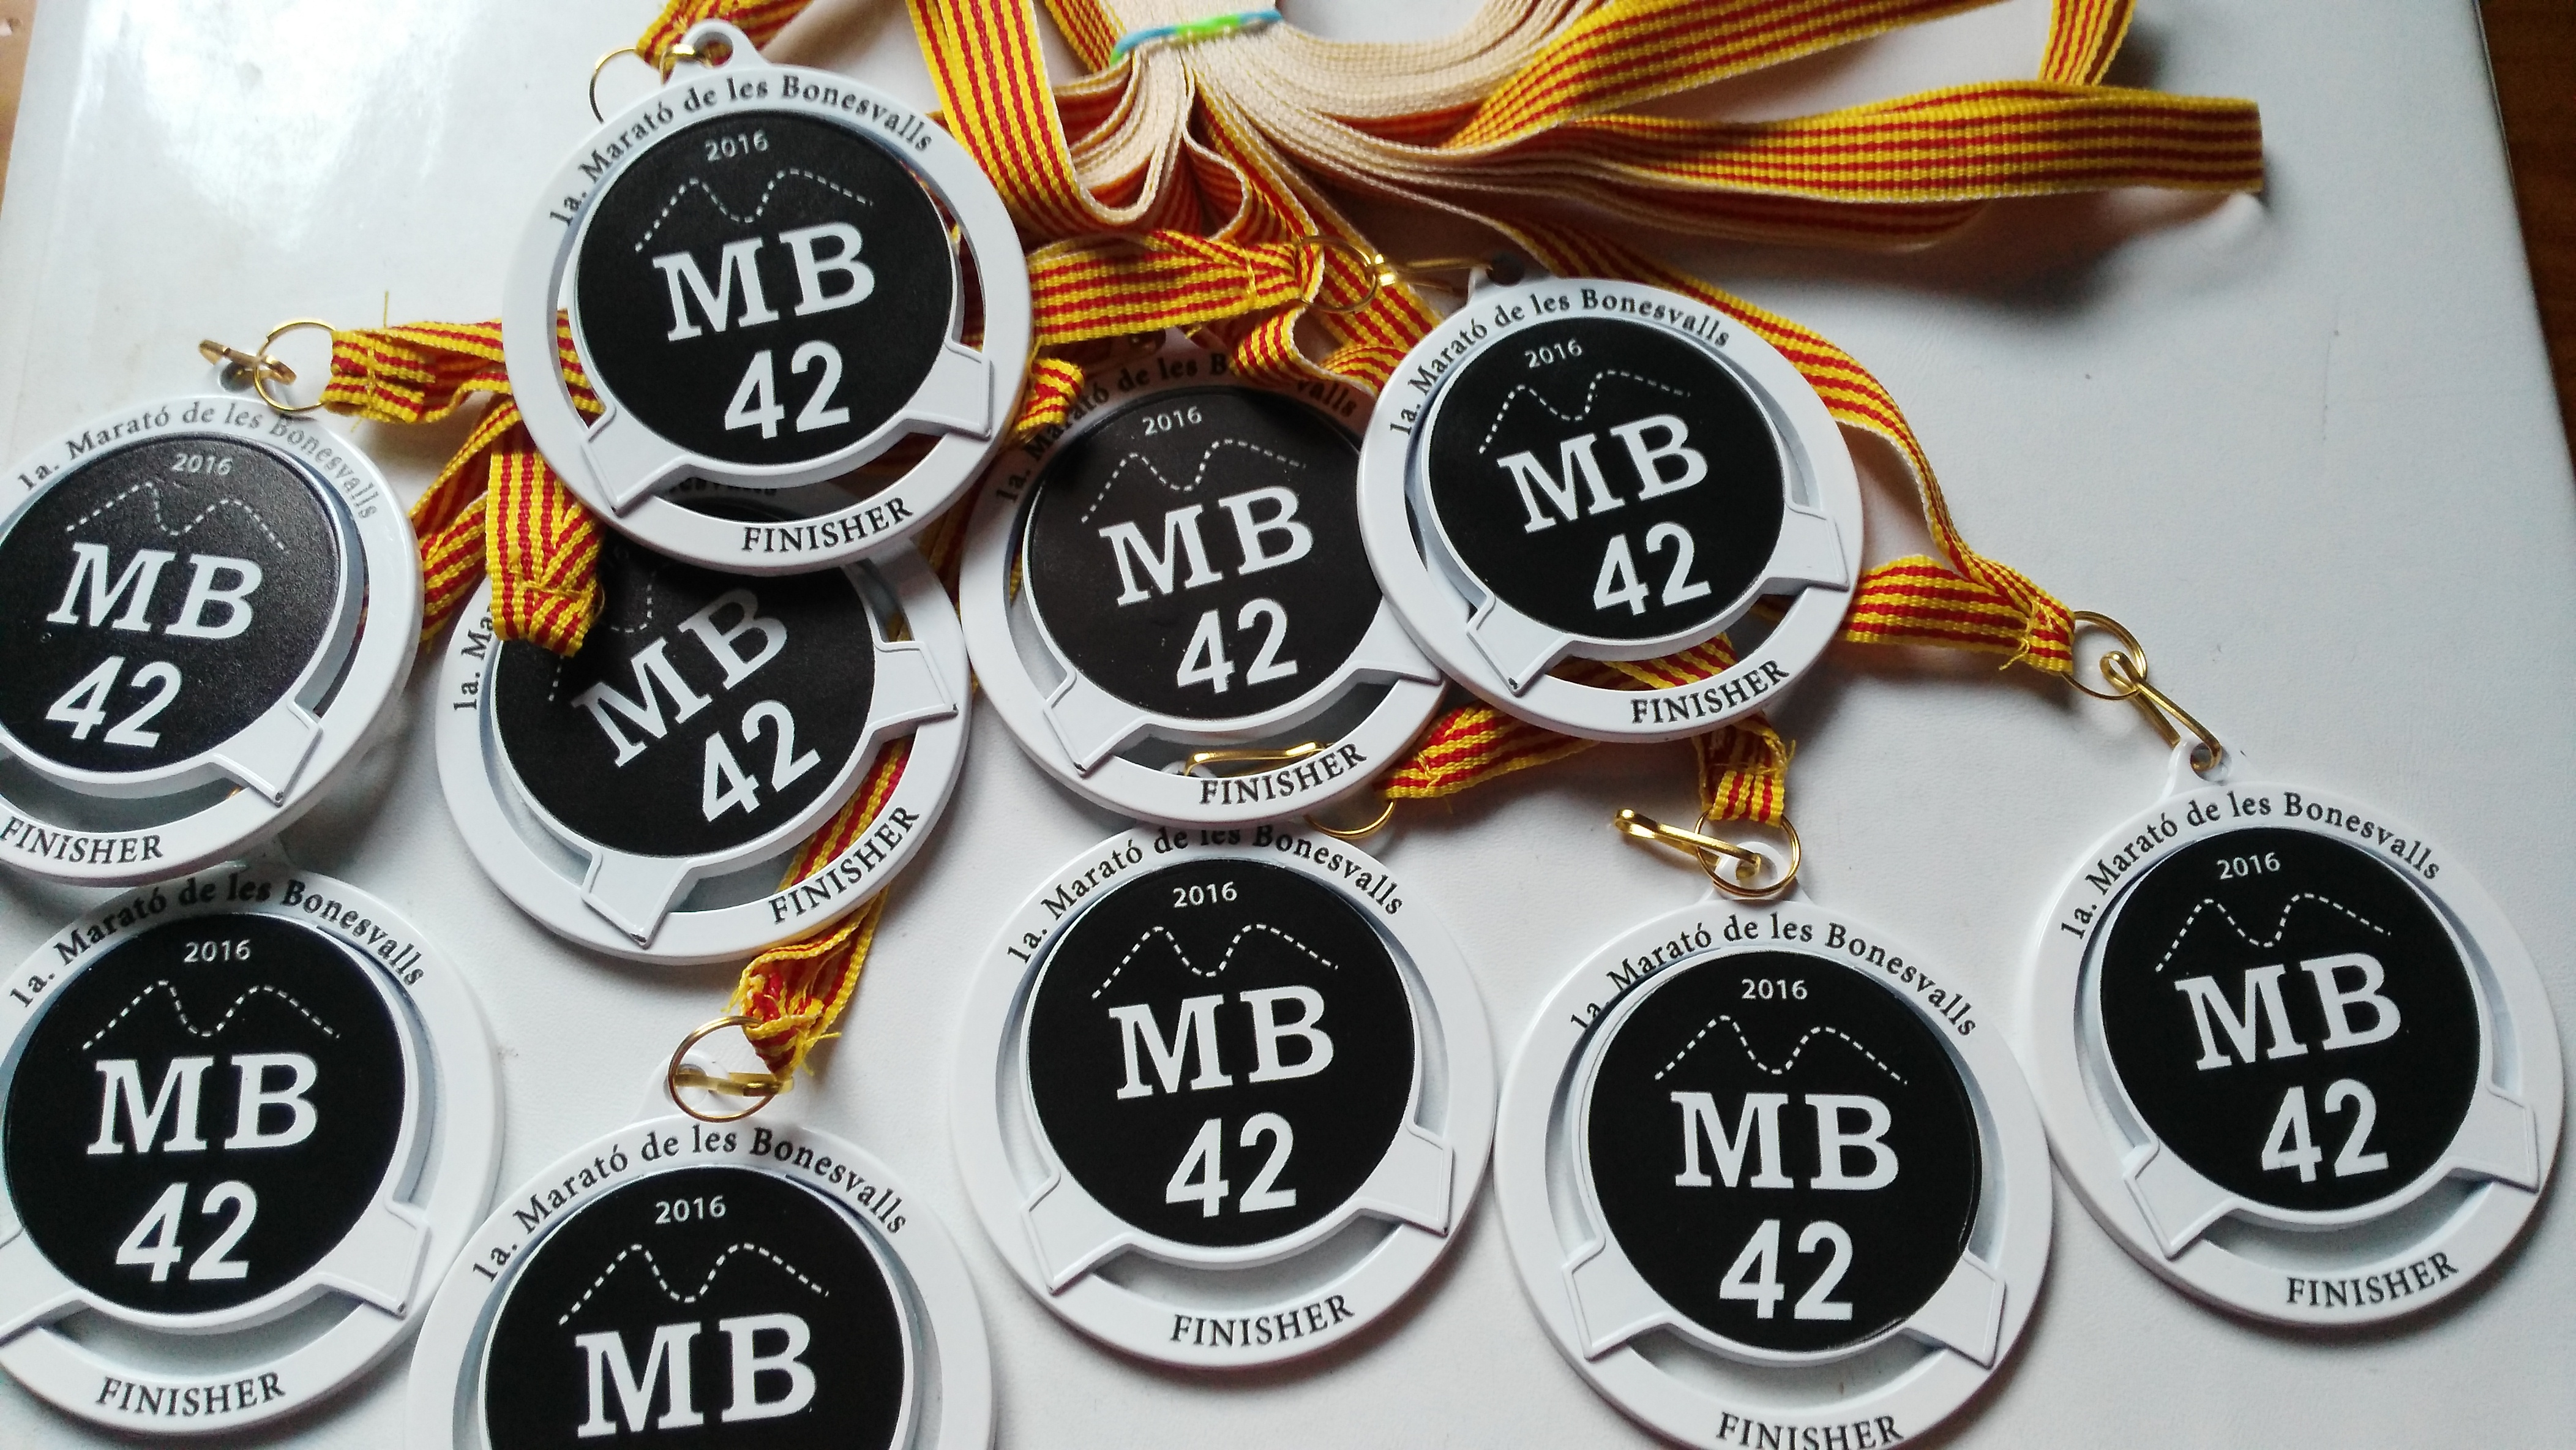 Medallas Finisher